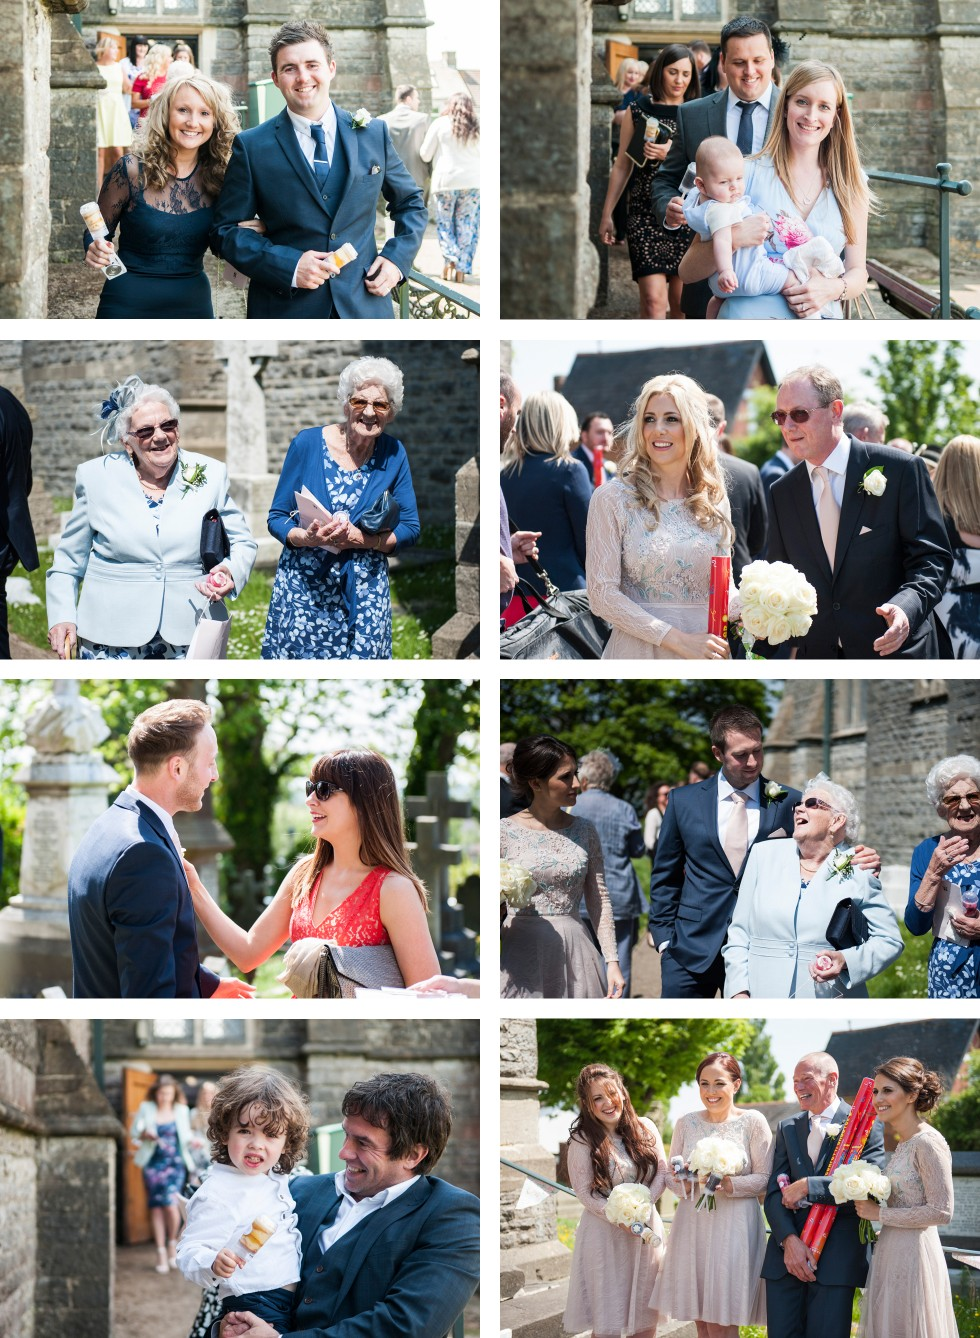 Siobhan & Jason St Augustines Penarth Park Plaza Cardiff wedding duo 21